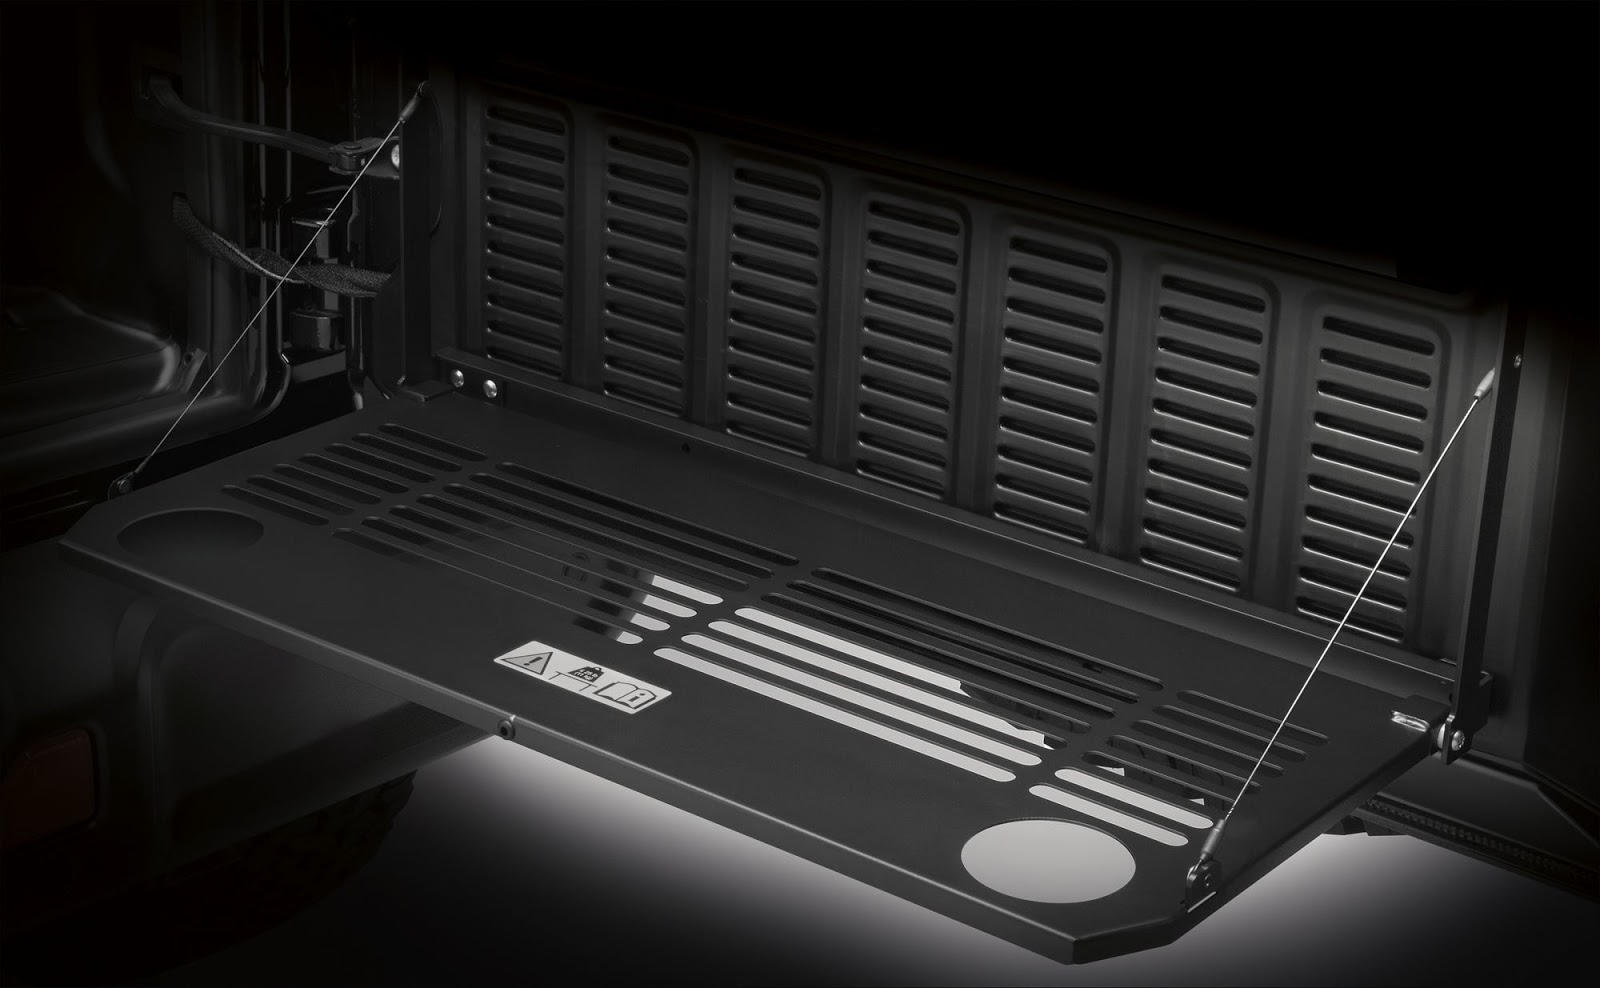 A first from Mopar for the Jeep® Wrangler is a tailgate table that flips out to create utility space and folds up for storage.